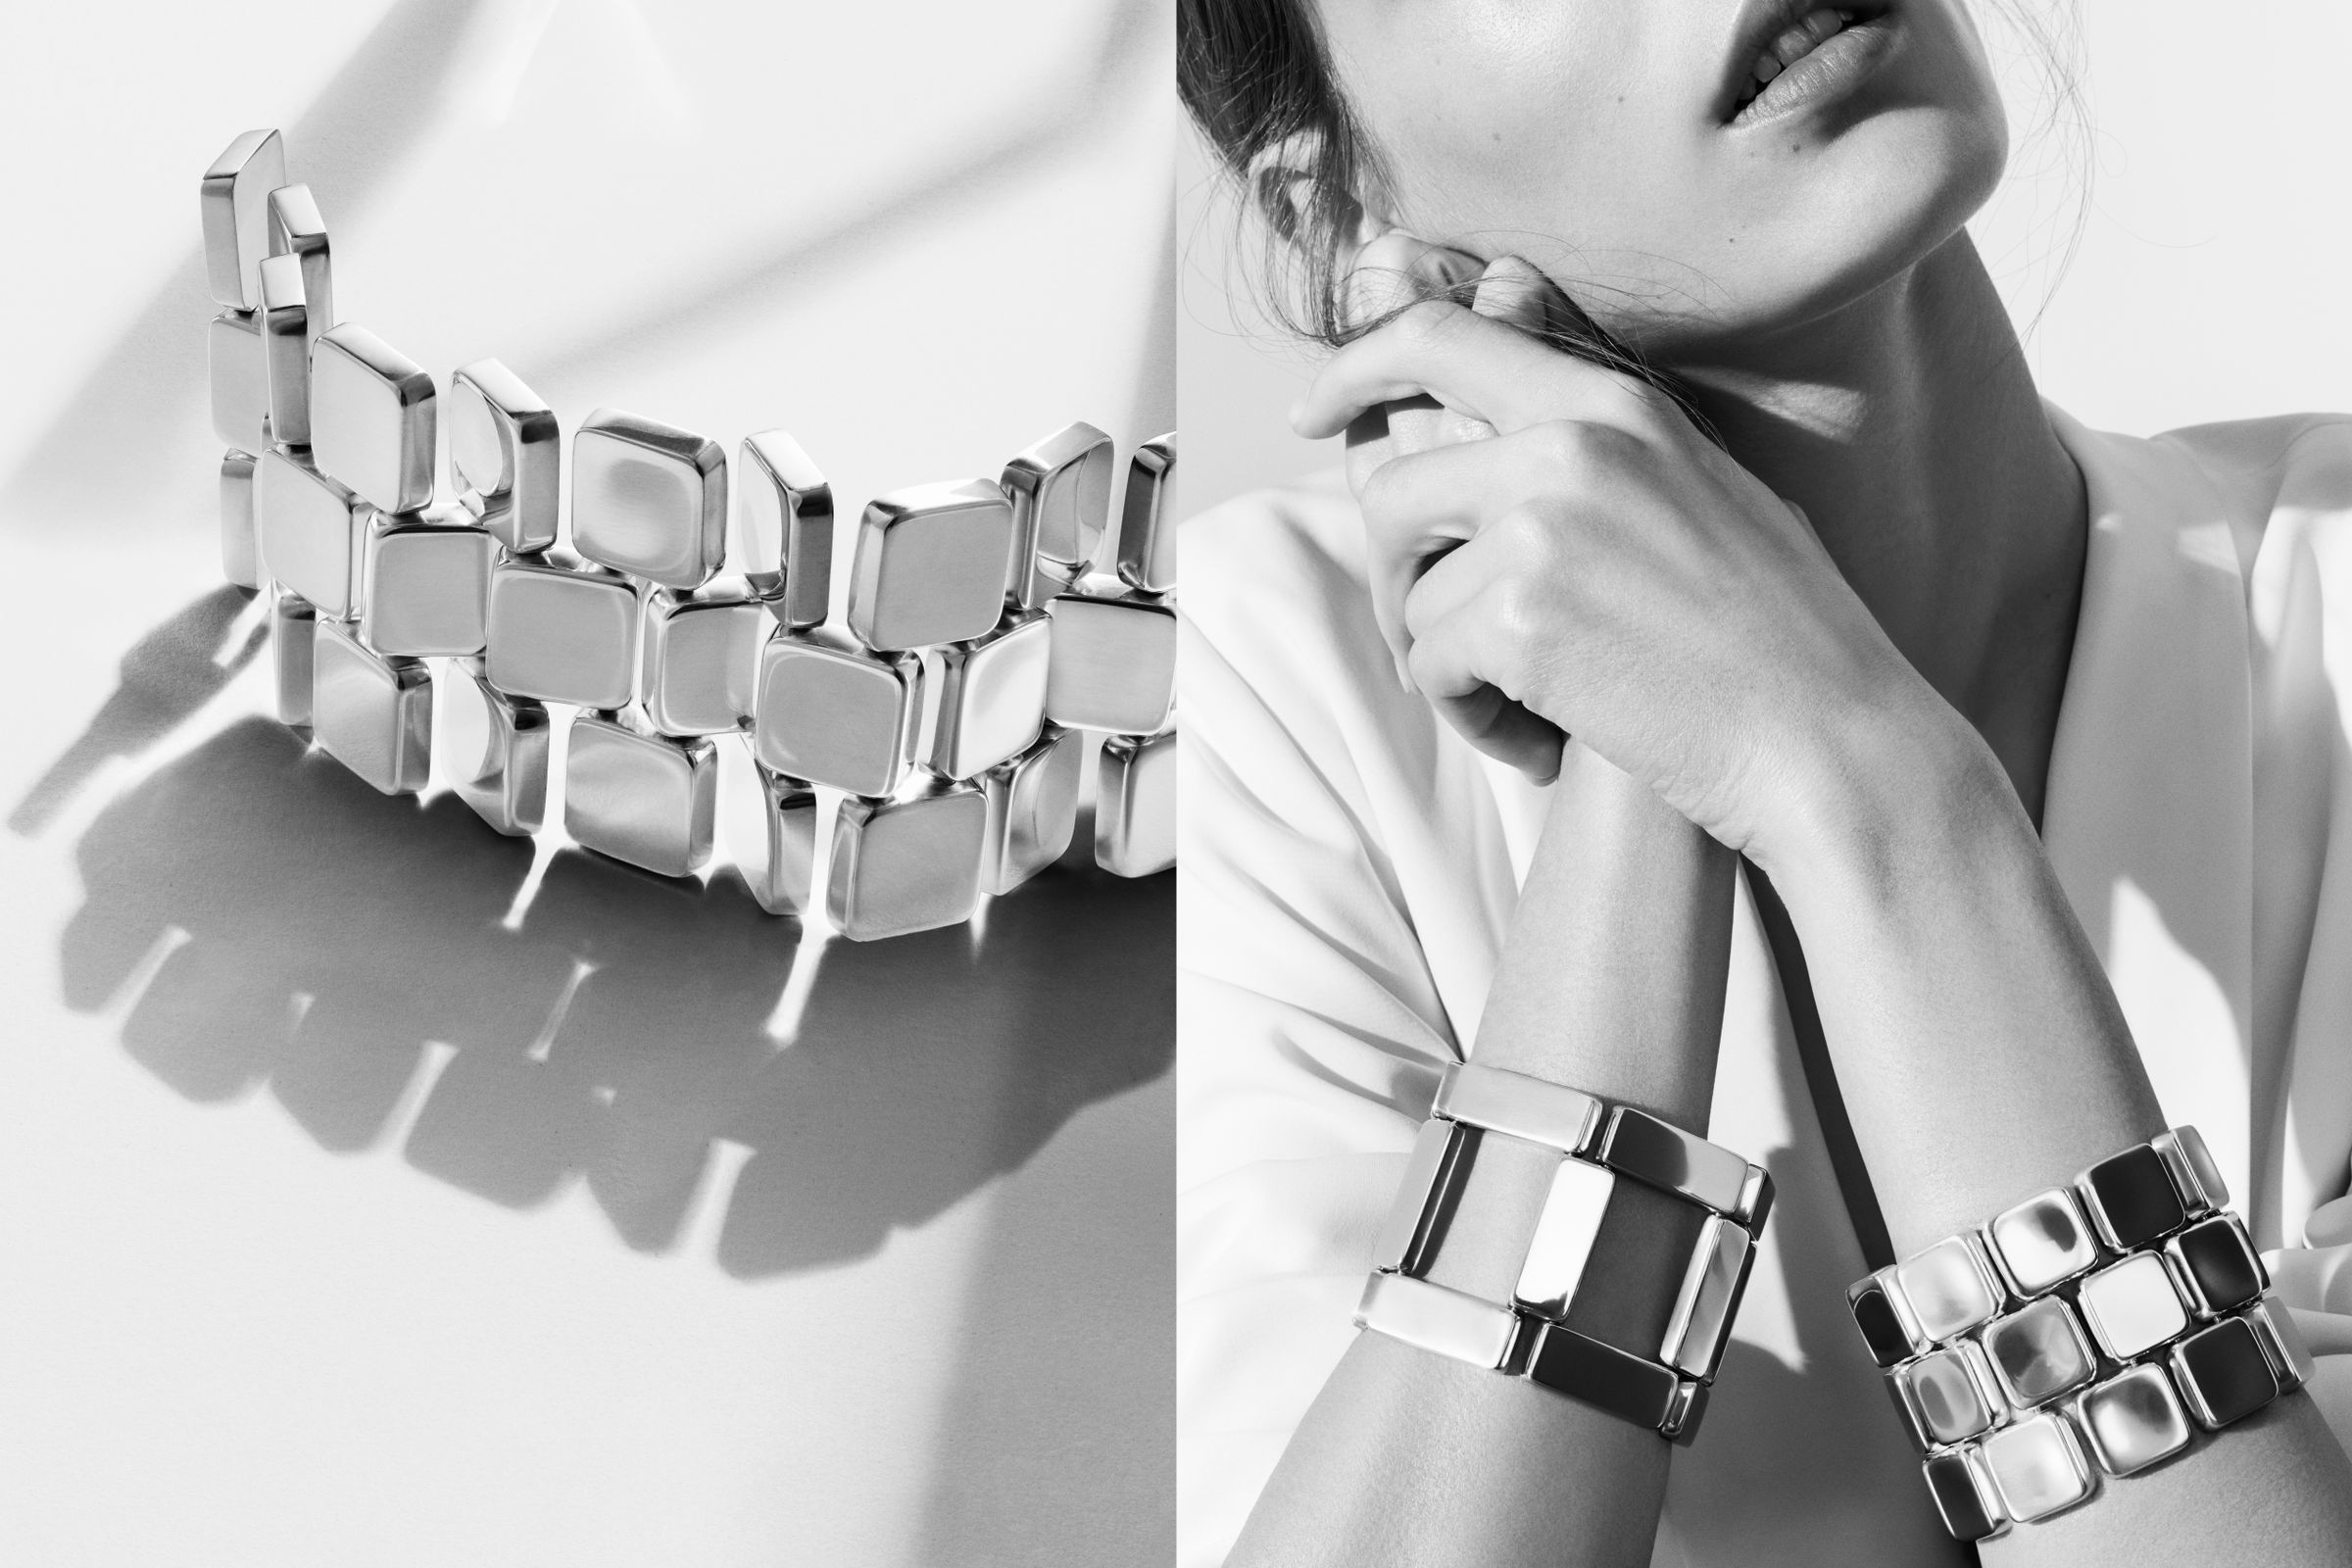 Georg Jensen campaign photographed by Hasse Nielsen and Toby McFarlan Pond